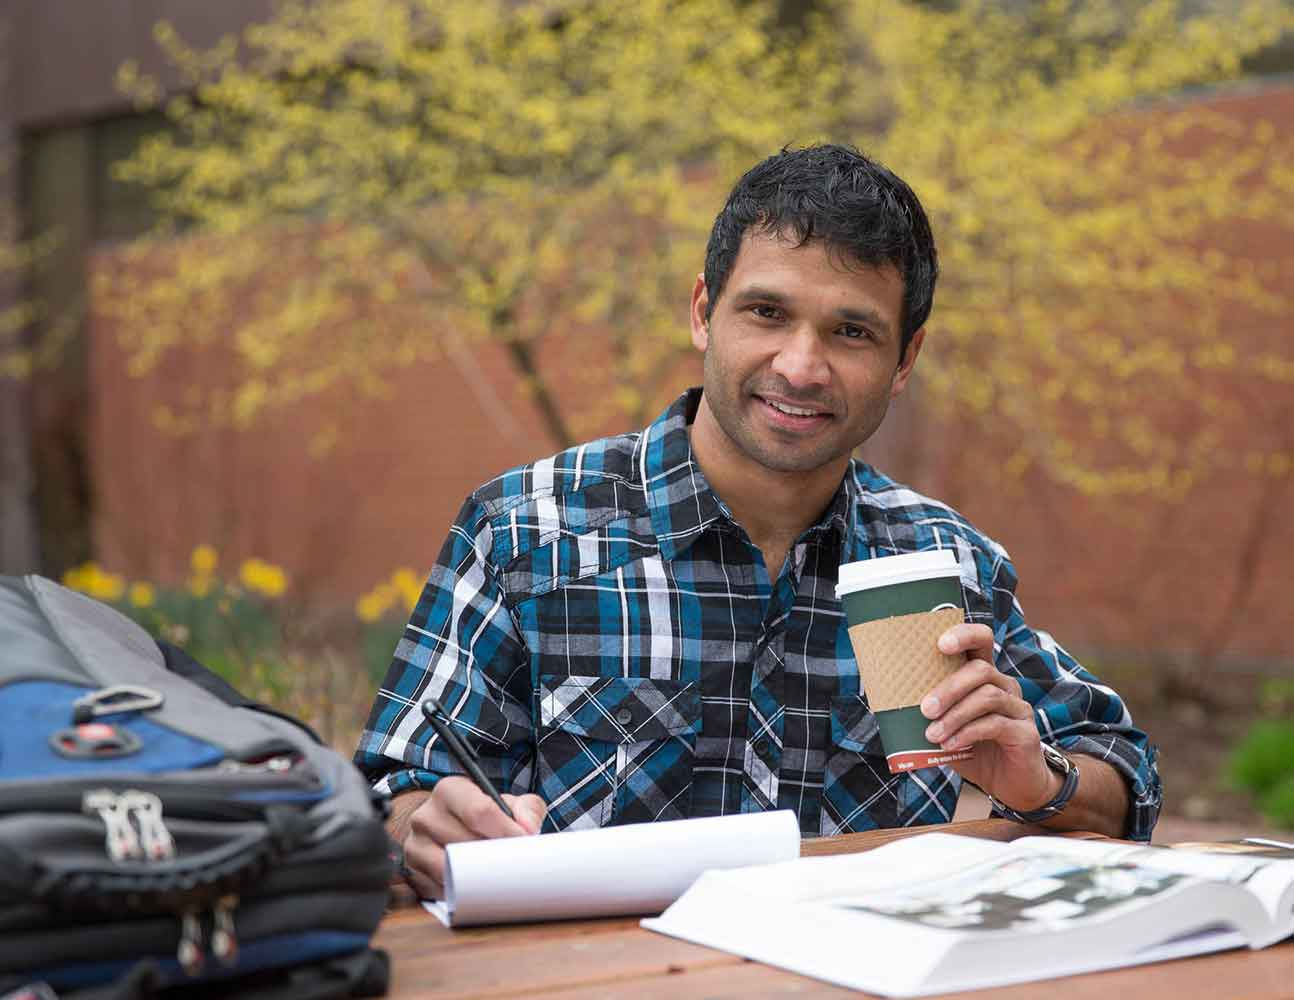 A student writes on a notepad while drinking coffee